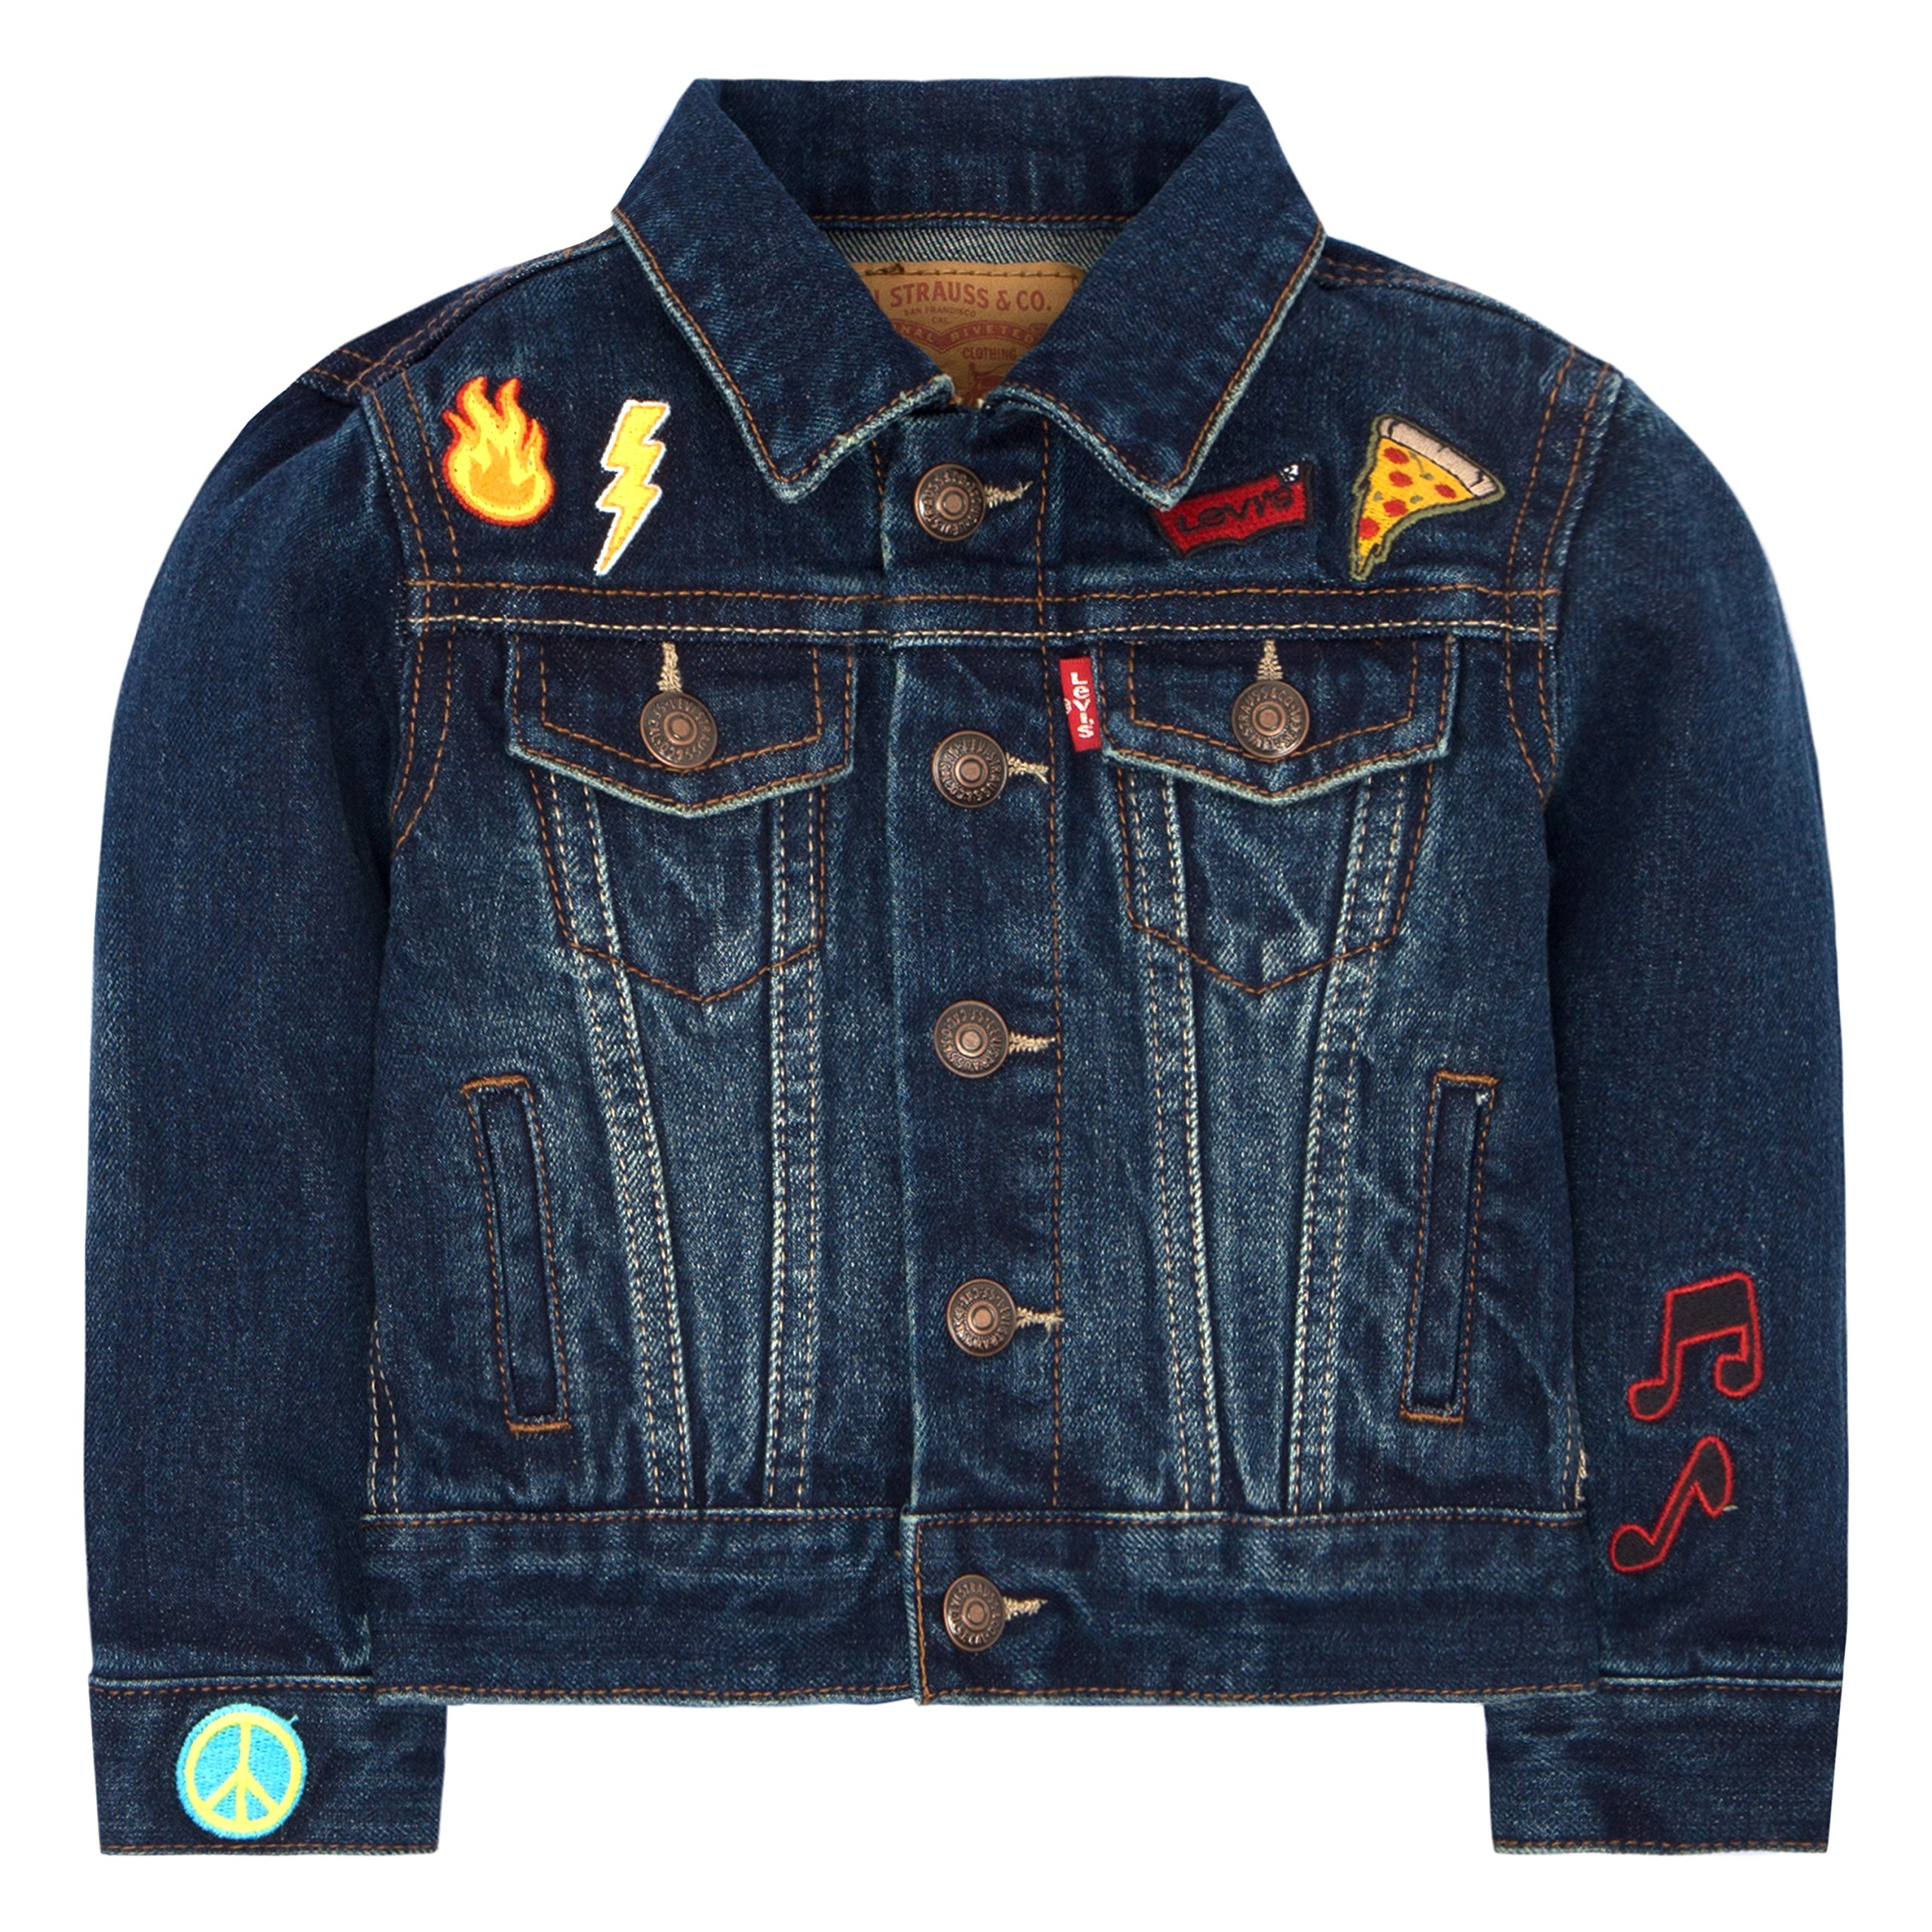 Levi's Baby Boys' Trucker Jacket, Stormy River, 6/9M by Levi's